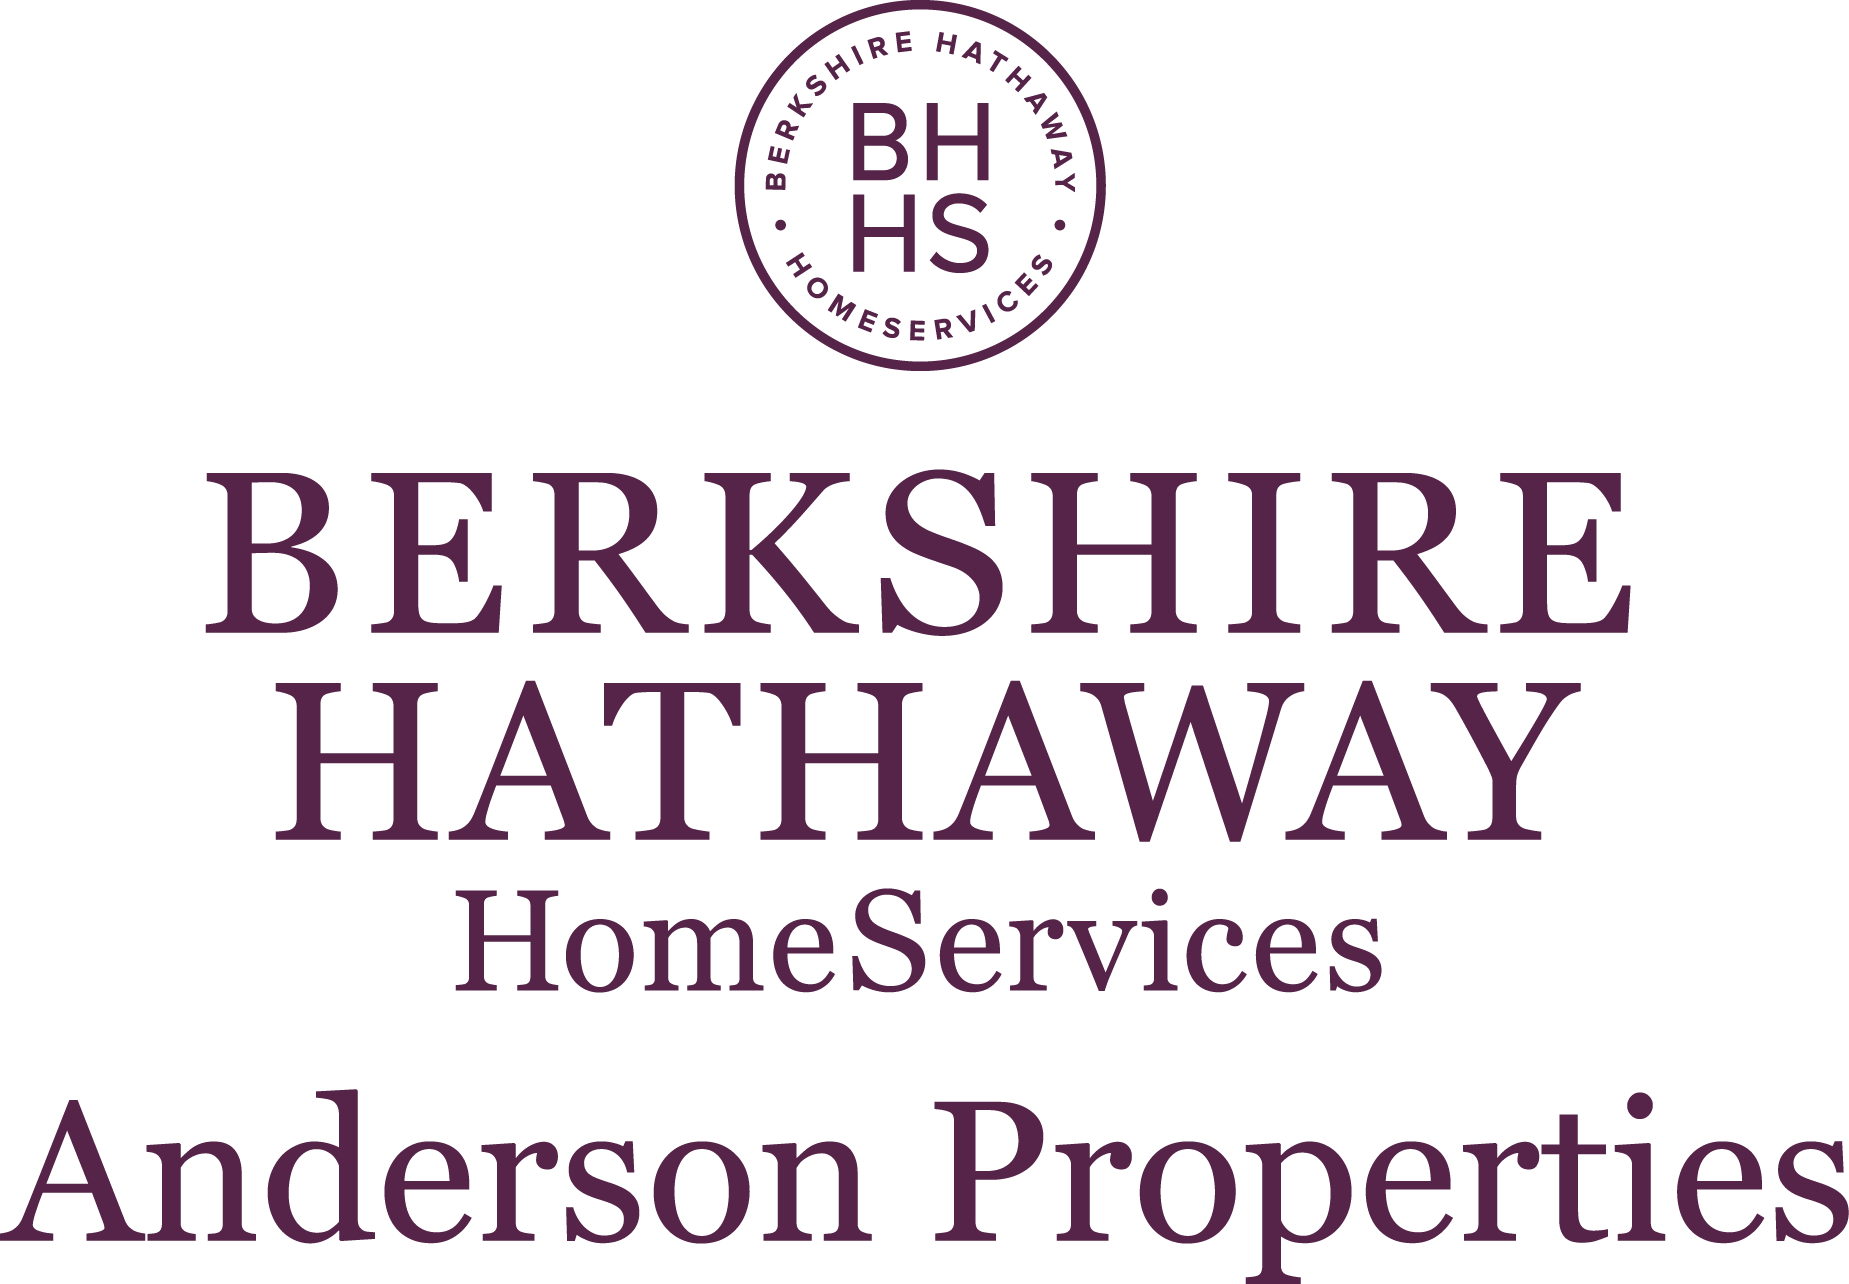 berkshire hathaway home services anderson properties » welcome to